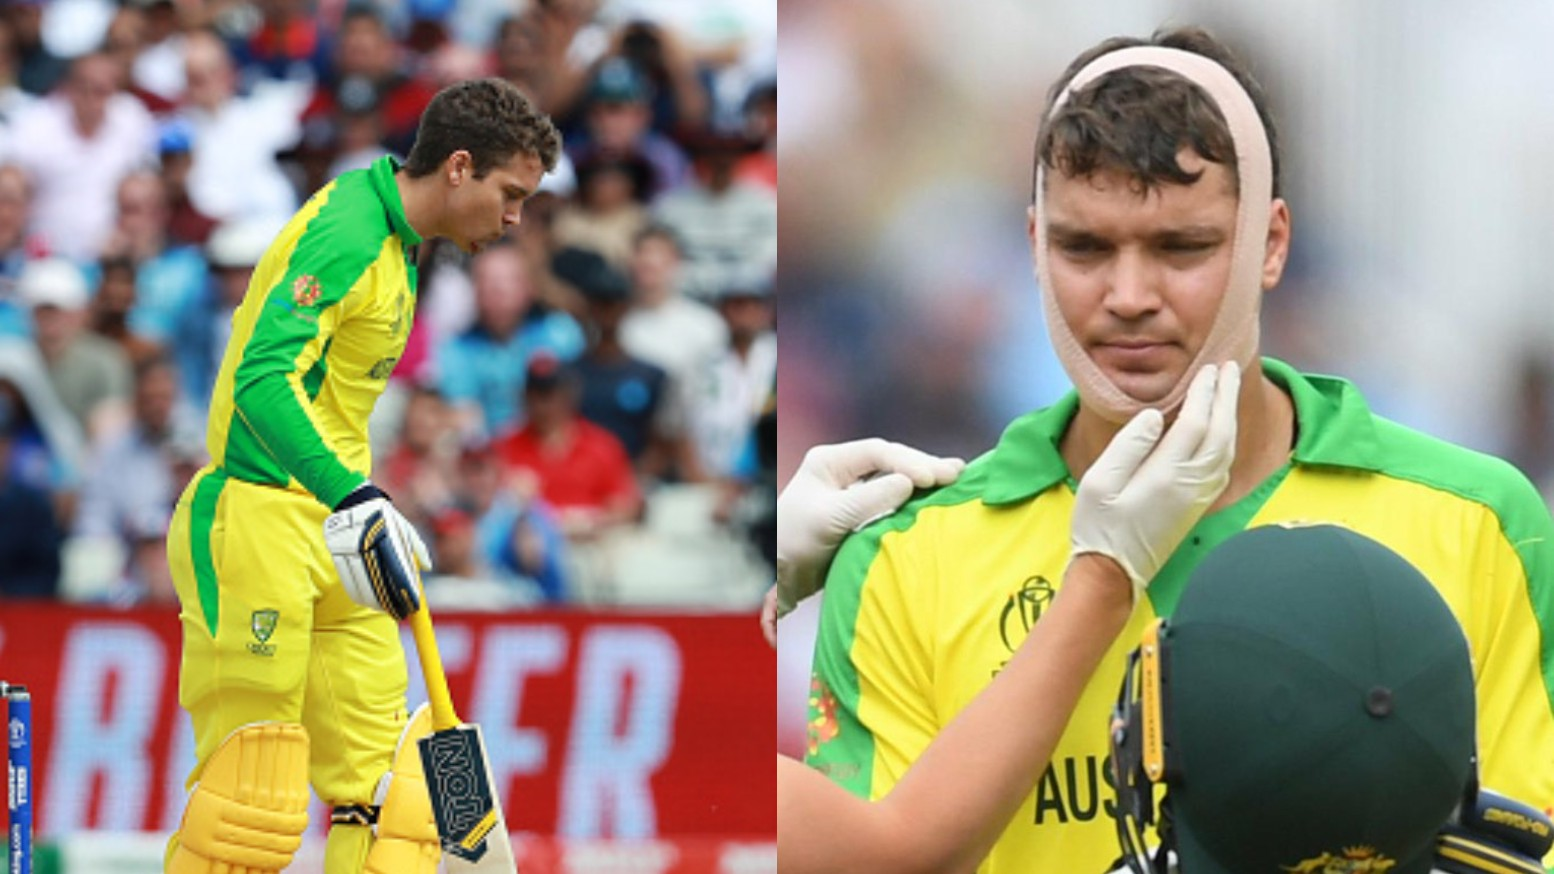 CWC 2019: WATCH- Alex Carey gets hit on his chin; fans laud his bravery to carry on batting